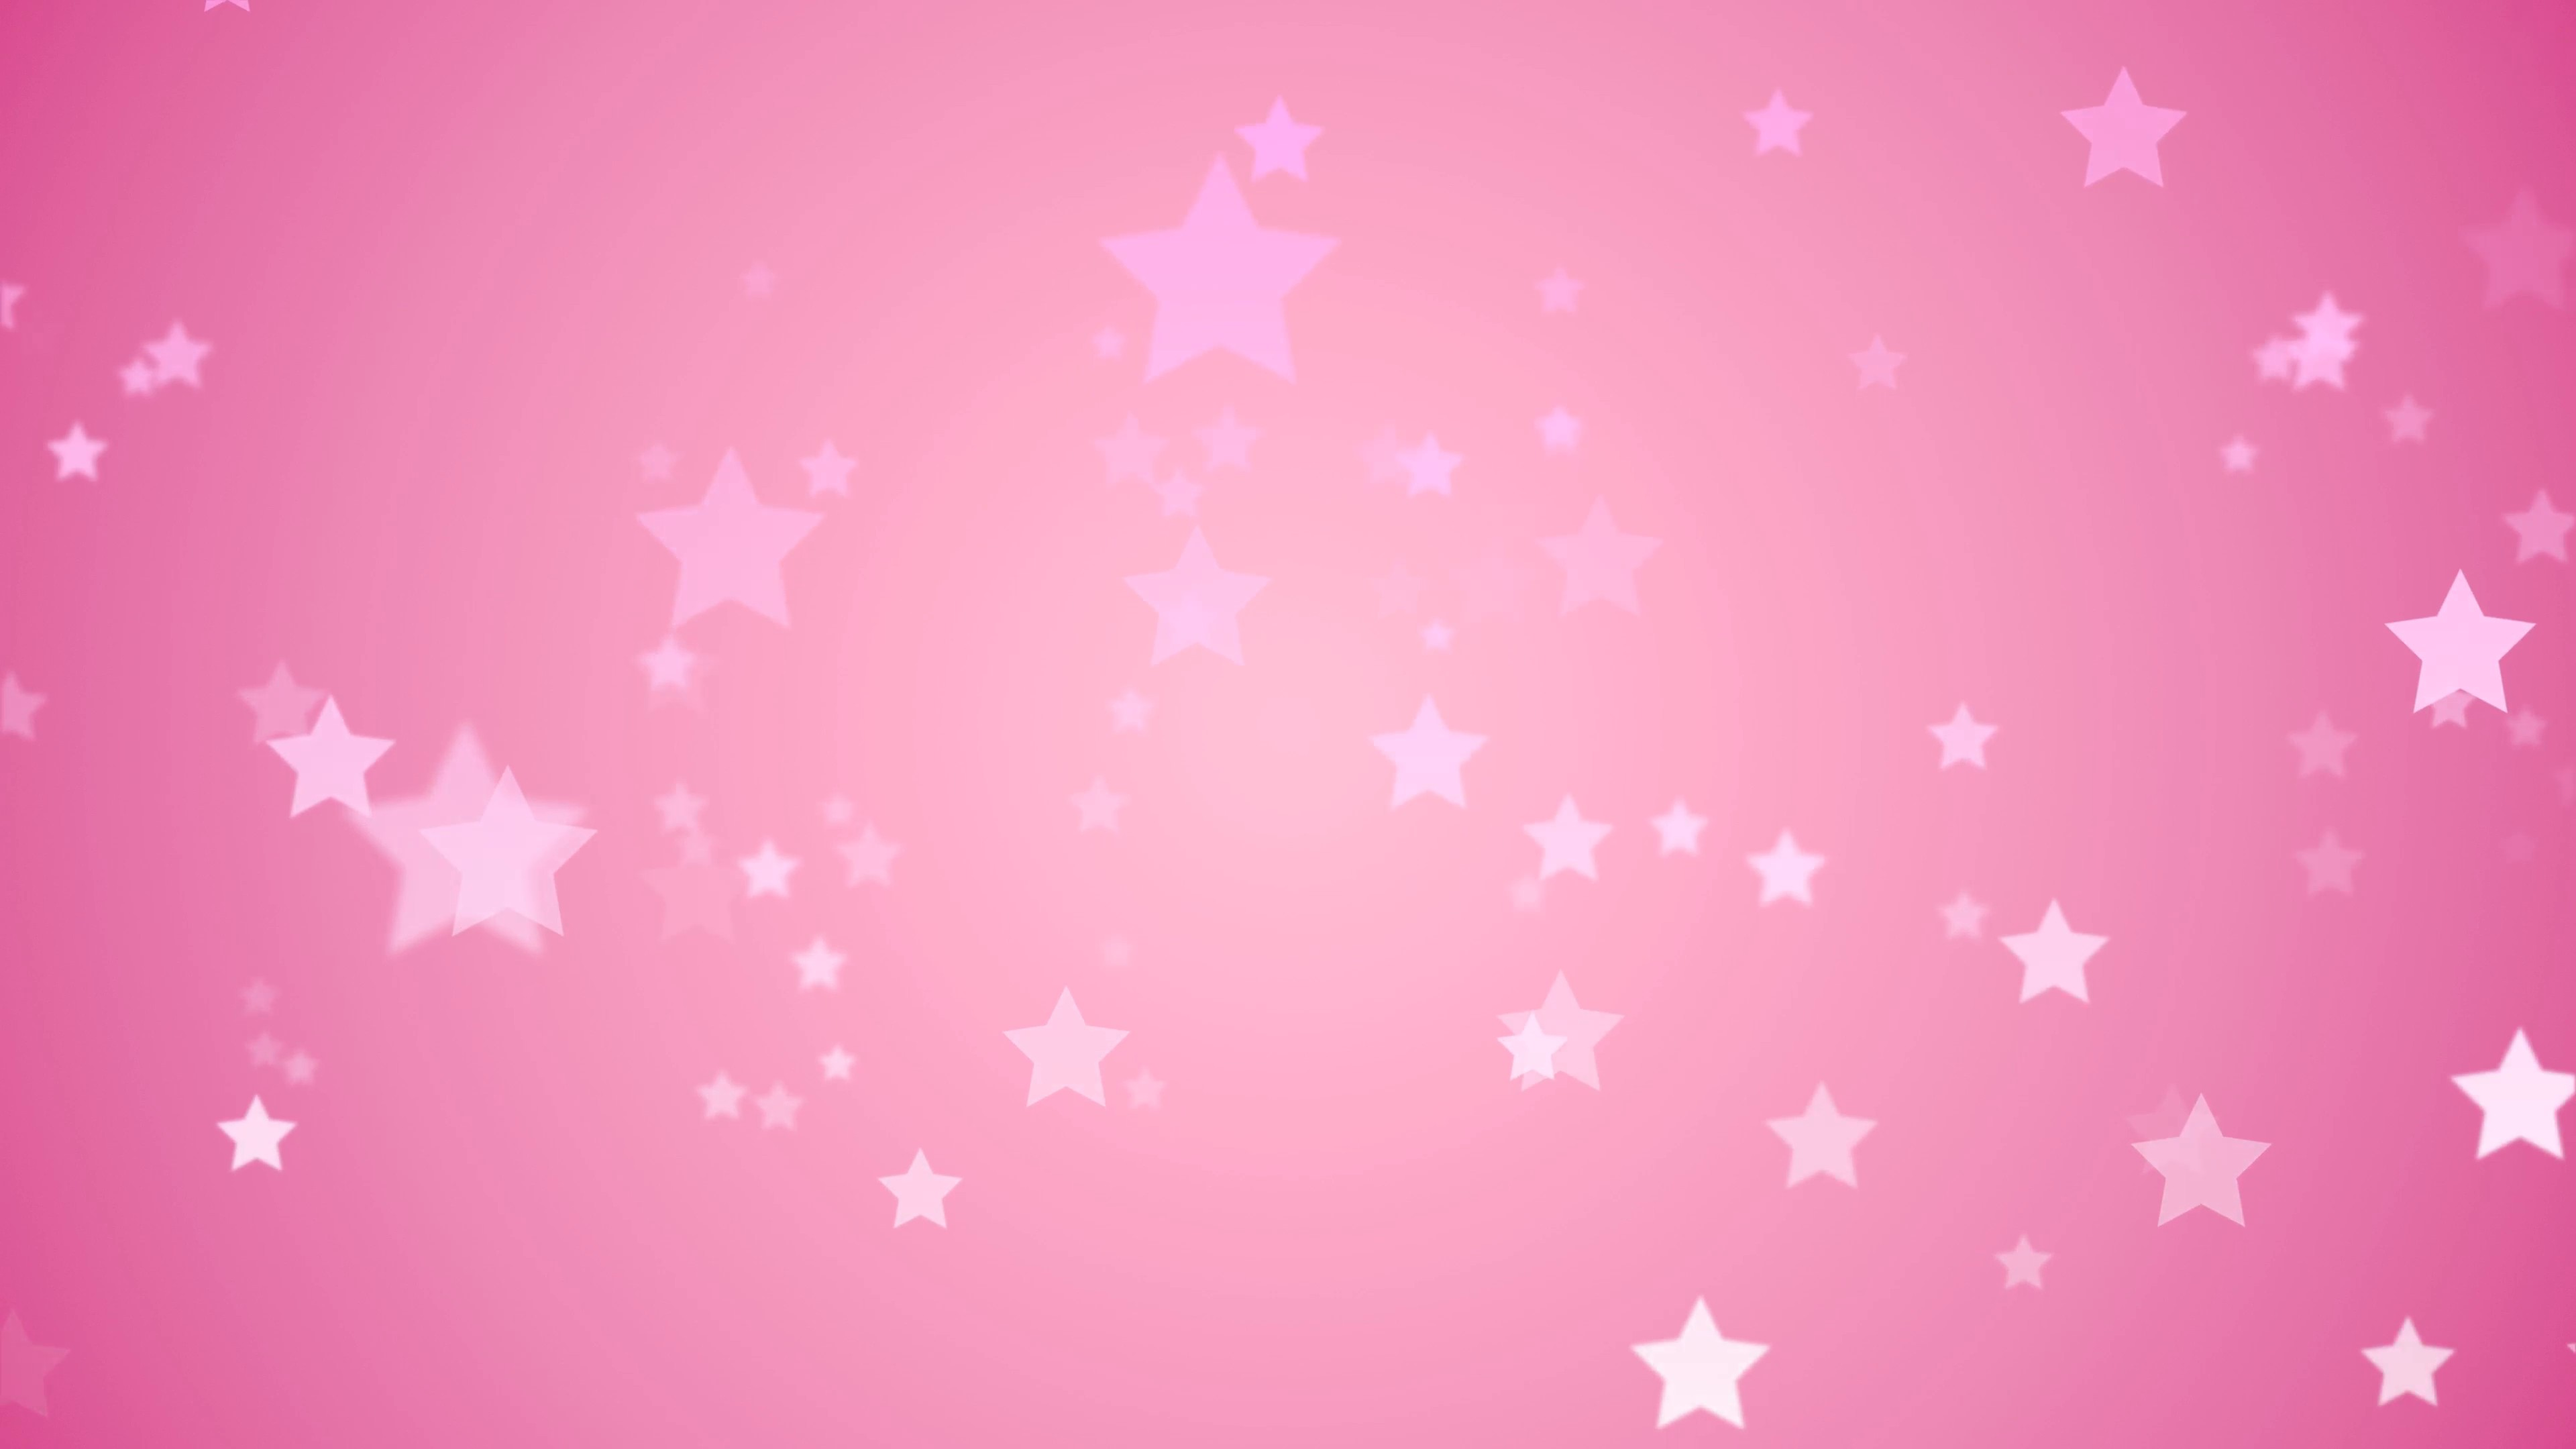 Light Pink Background ·① Download Free HD Wallpapers For